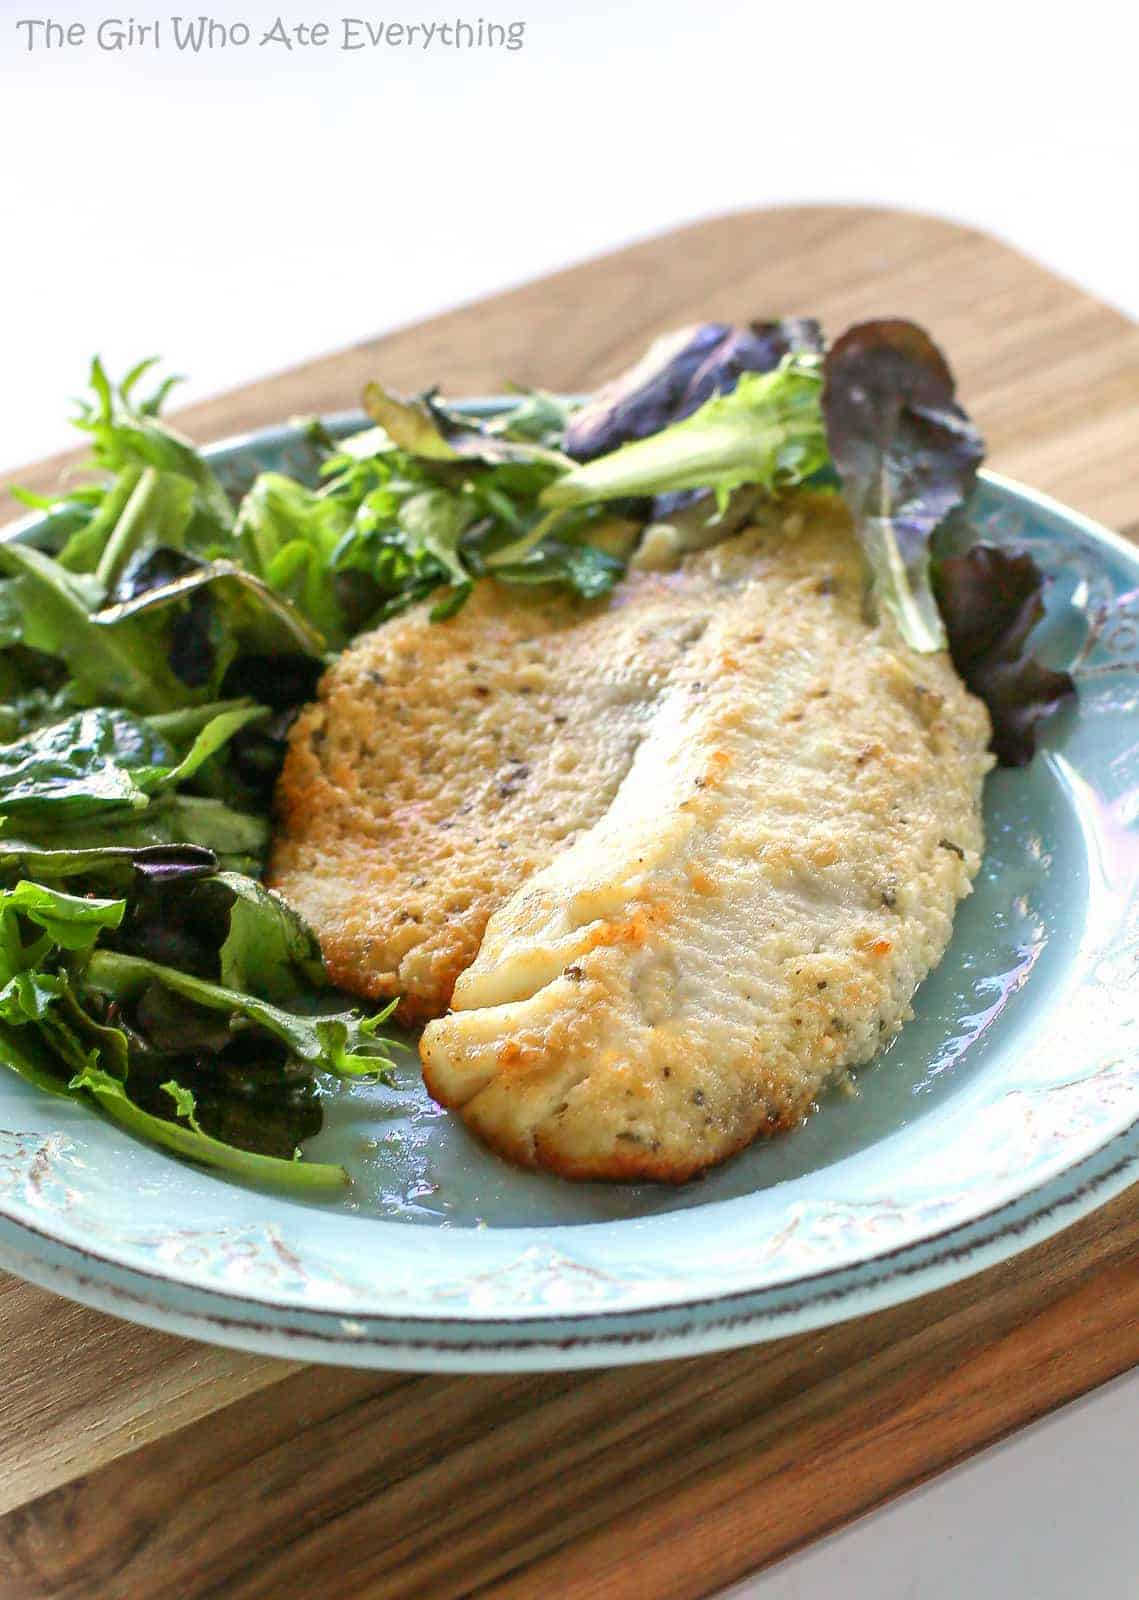 Parmesan Tilapia - a fish recipe that tastes like Doritos and it's healthy. the-girl-who-ate-everything.com